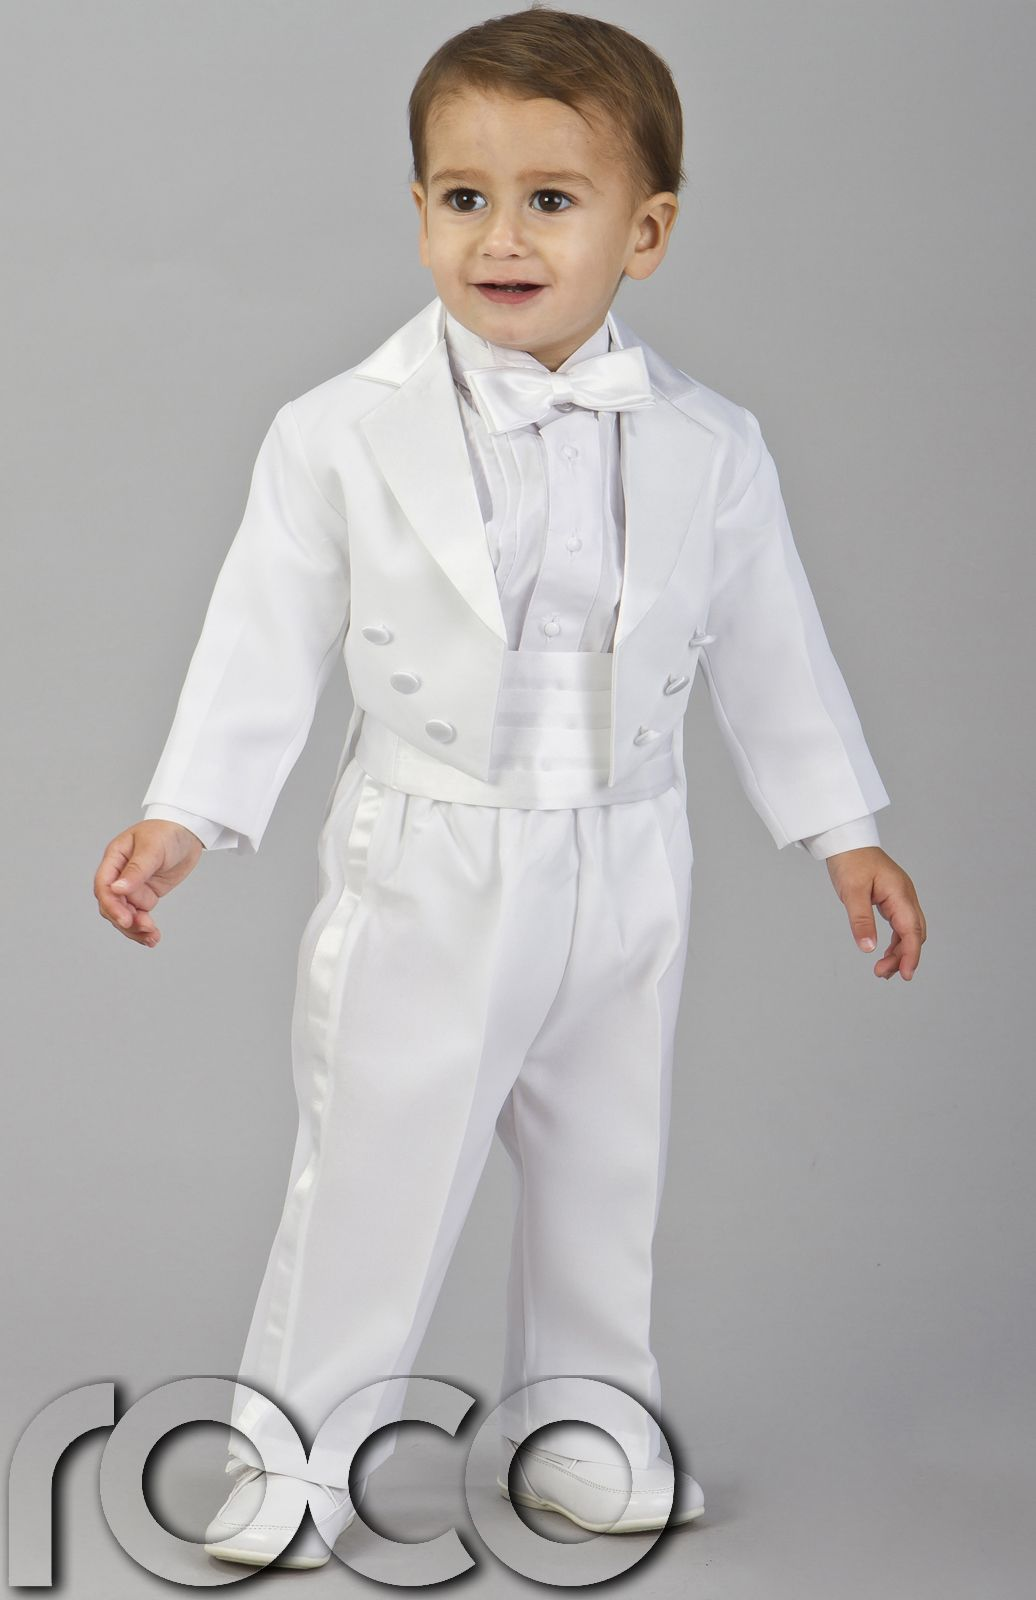 Details about BOYS WHITE TUXEDO CRUISE DINNER WEDDING PAGEBOY TAIL ...